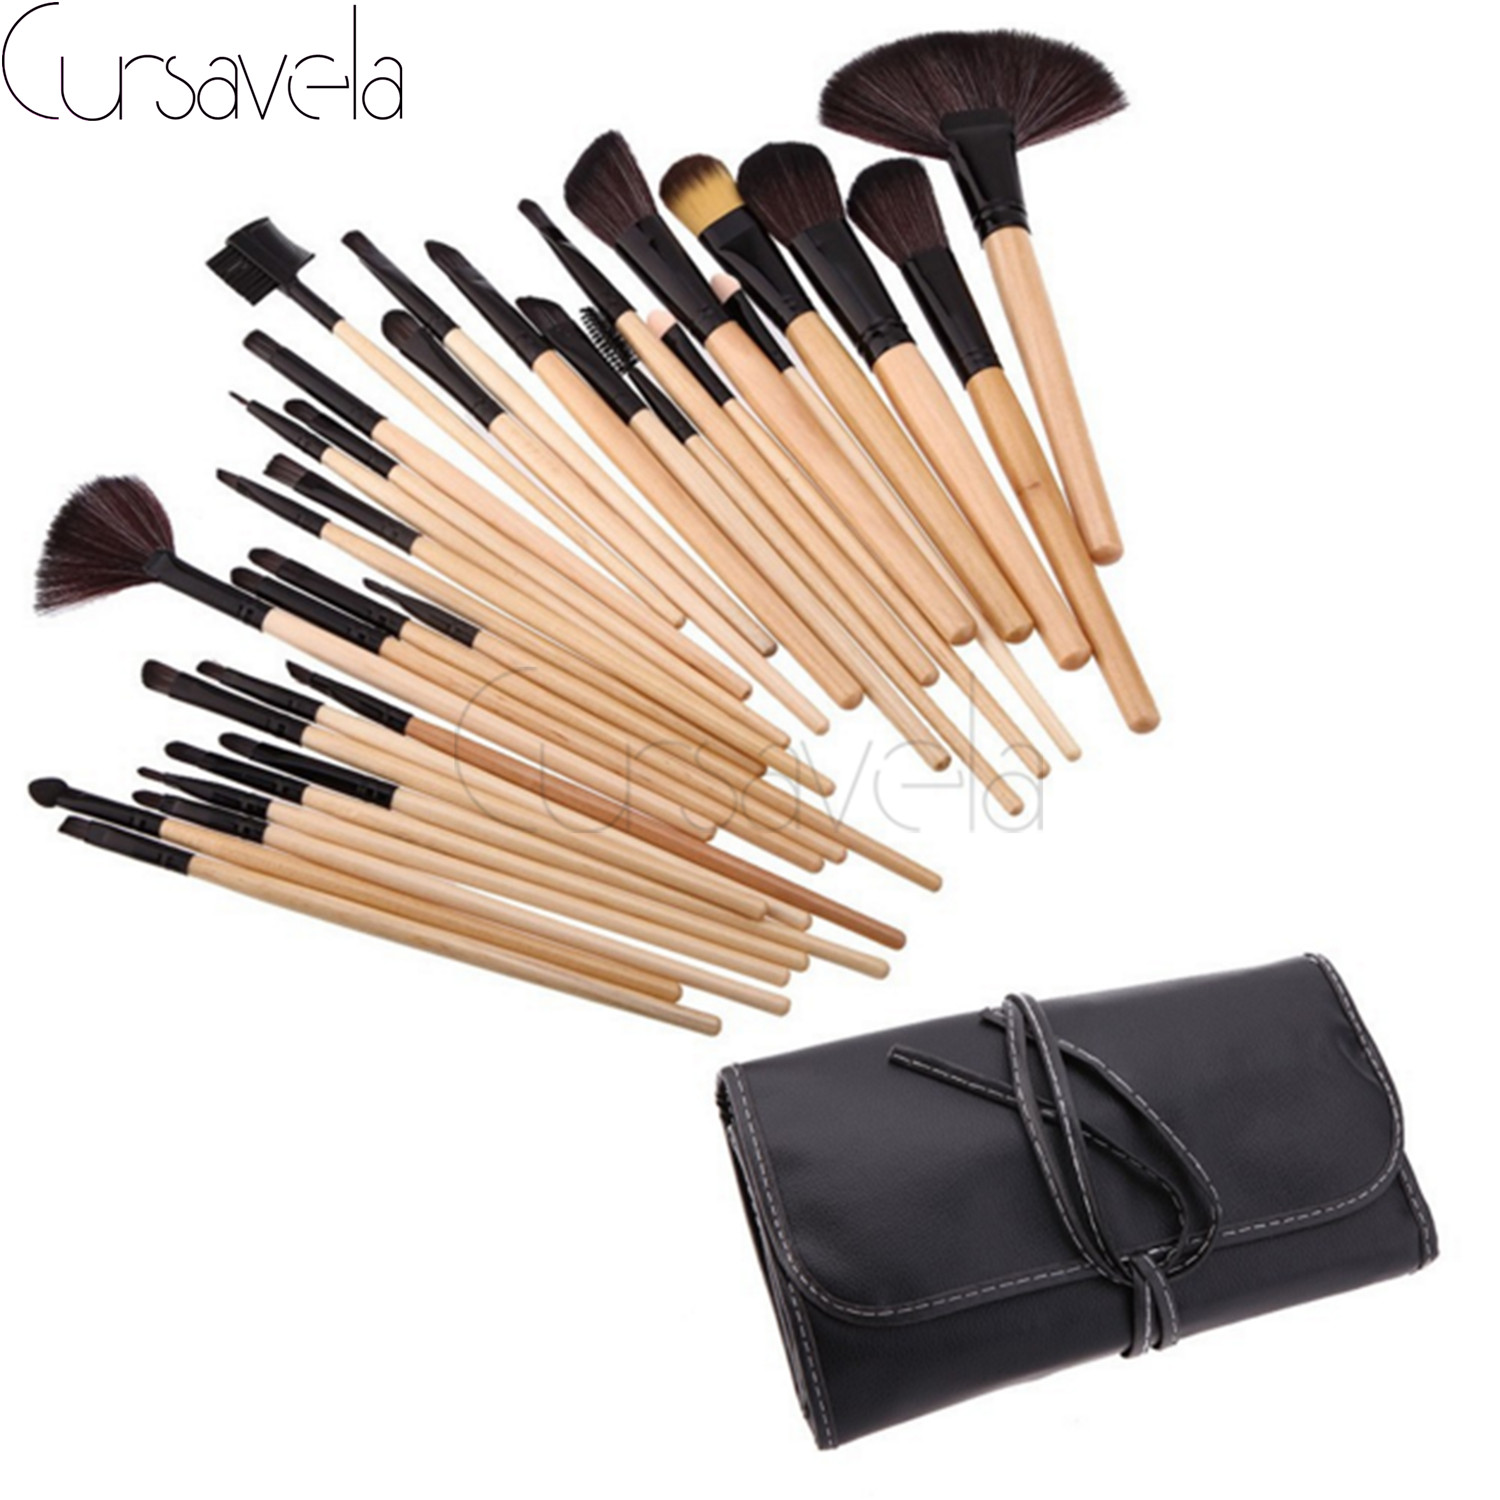 32pcs Makeup Brushes Set Goat Hair Professional Brown Makeup Brush Foundation Powder Blush Eyeliner Brushes With PU Bag EAB038 32 pcs kit makeup brushes professional set cosmetic professional makeup brush set goat hair real makeup brushes brand techniques